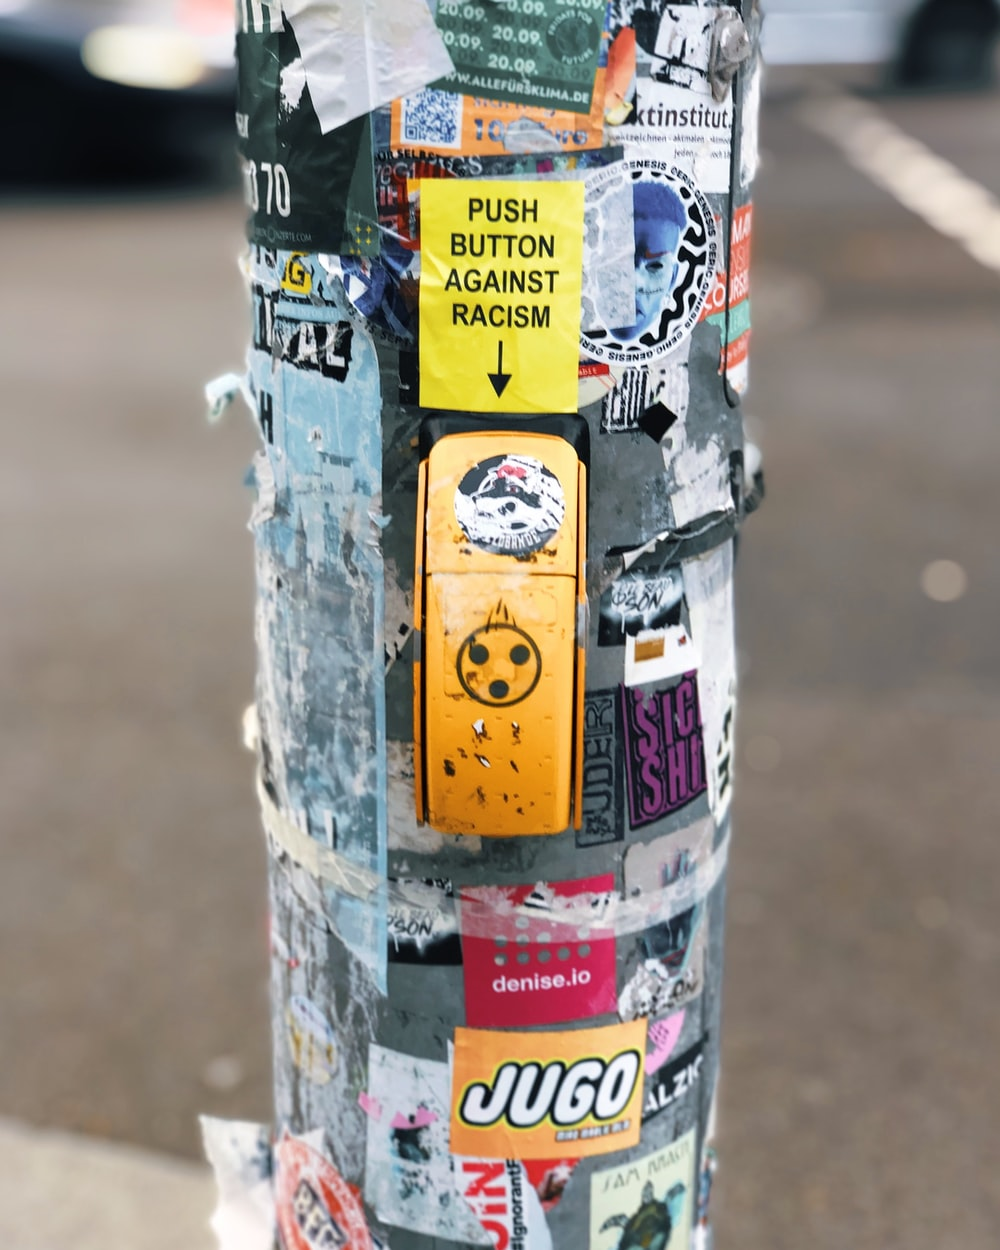 concrete post surrounded by posters